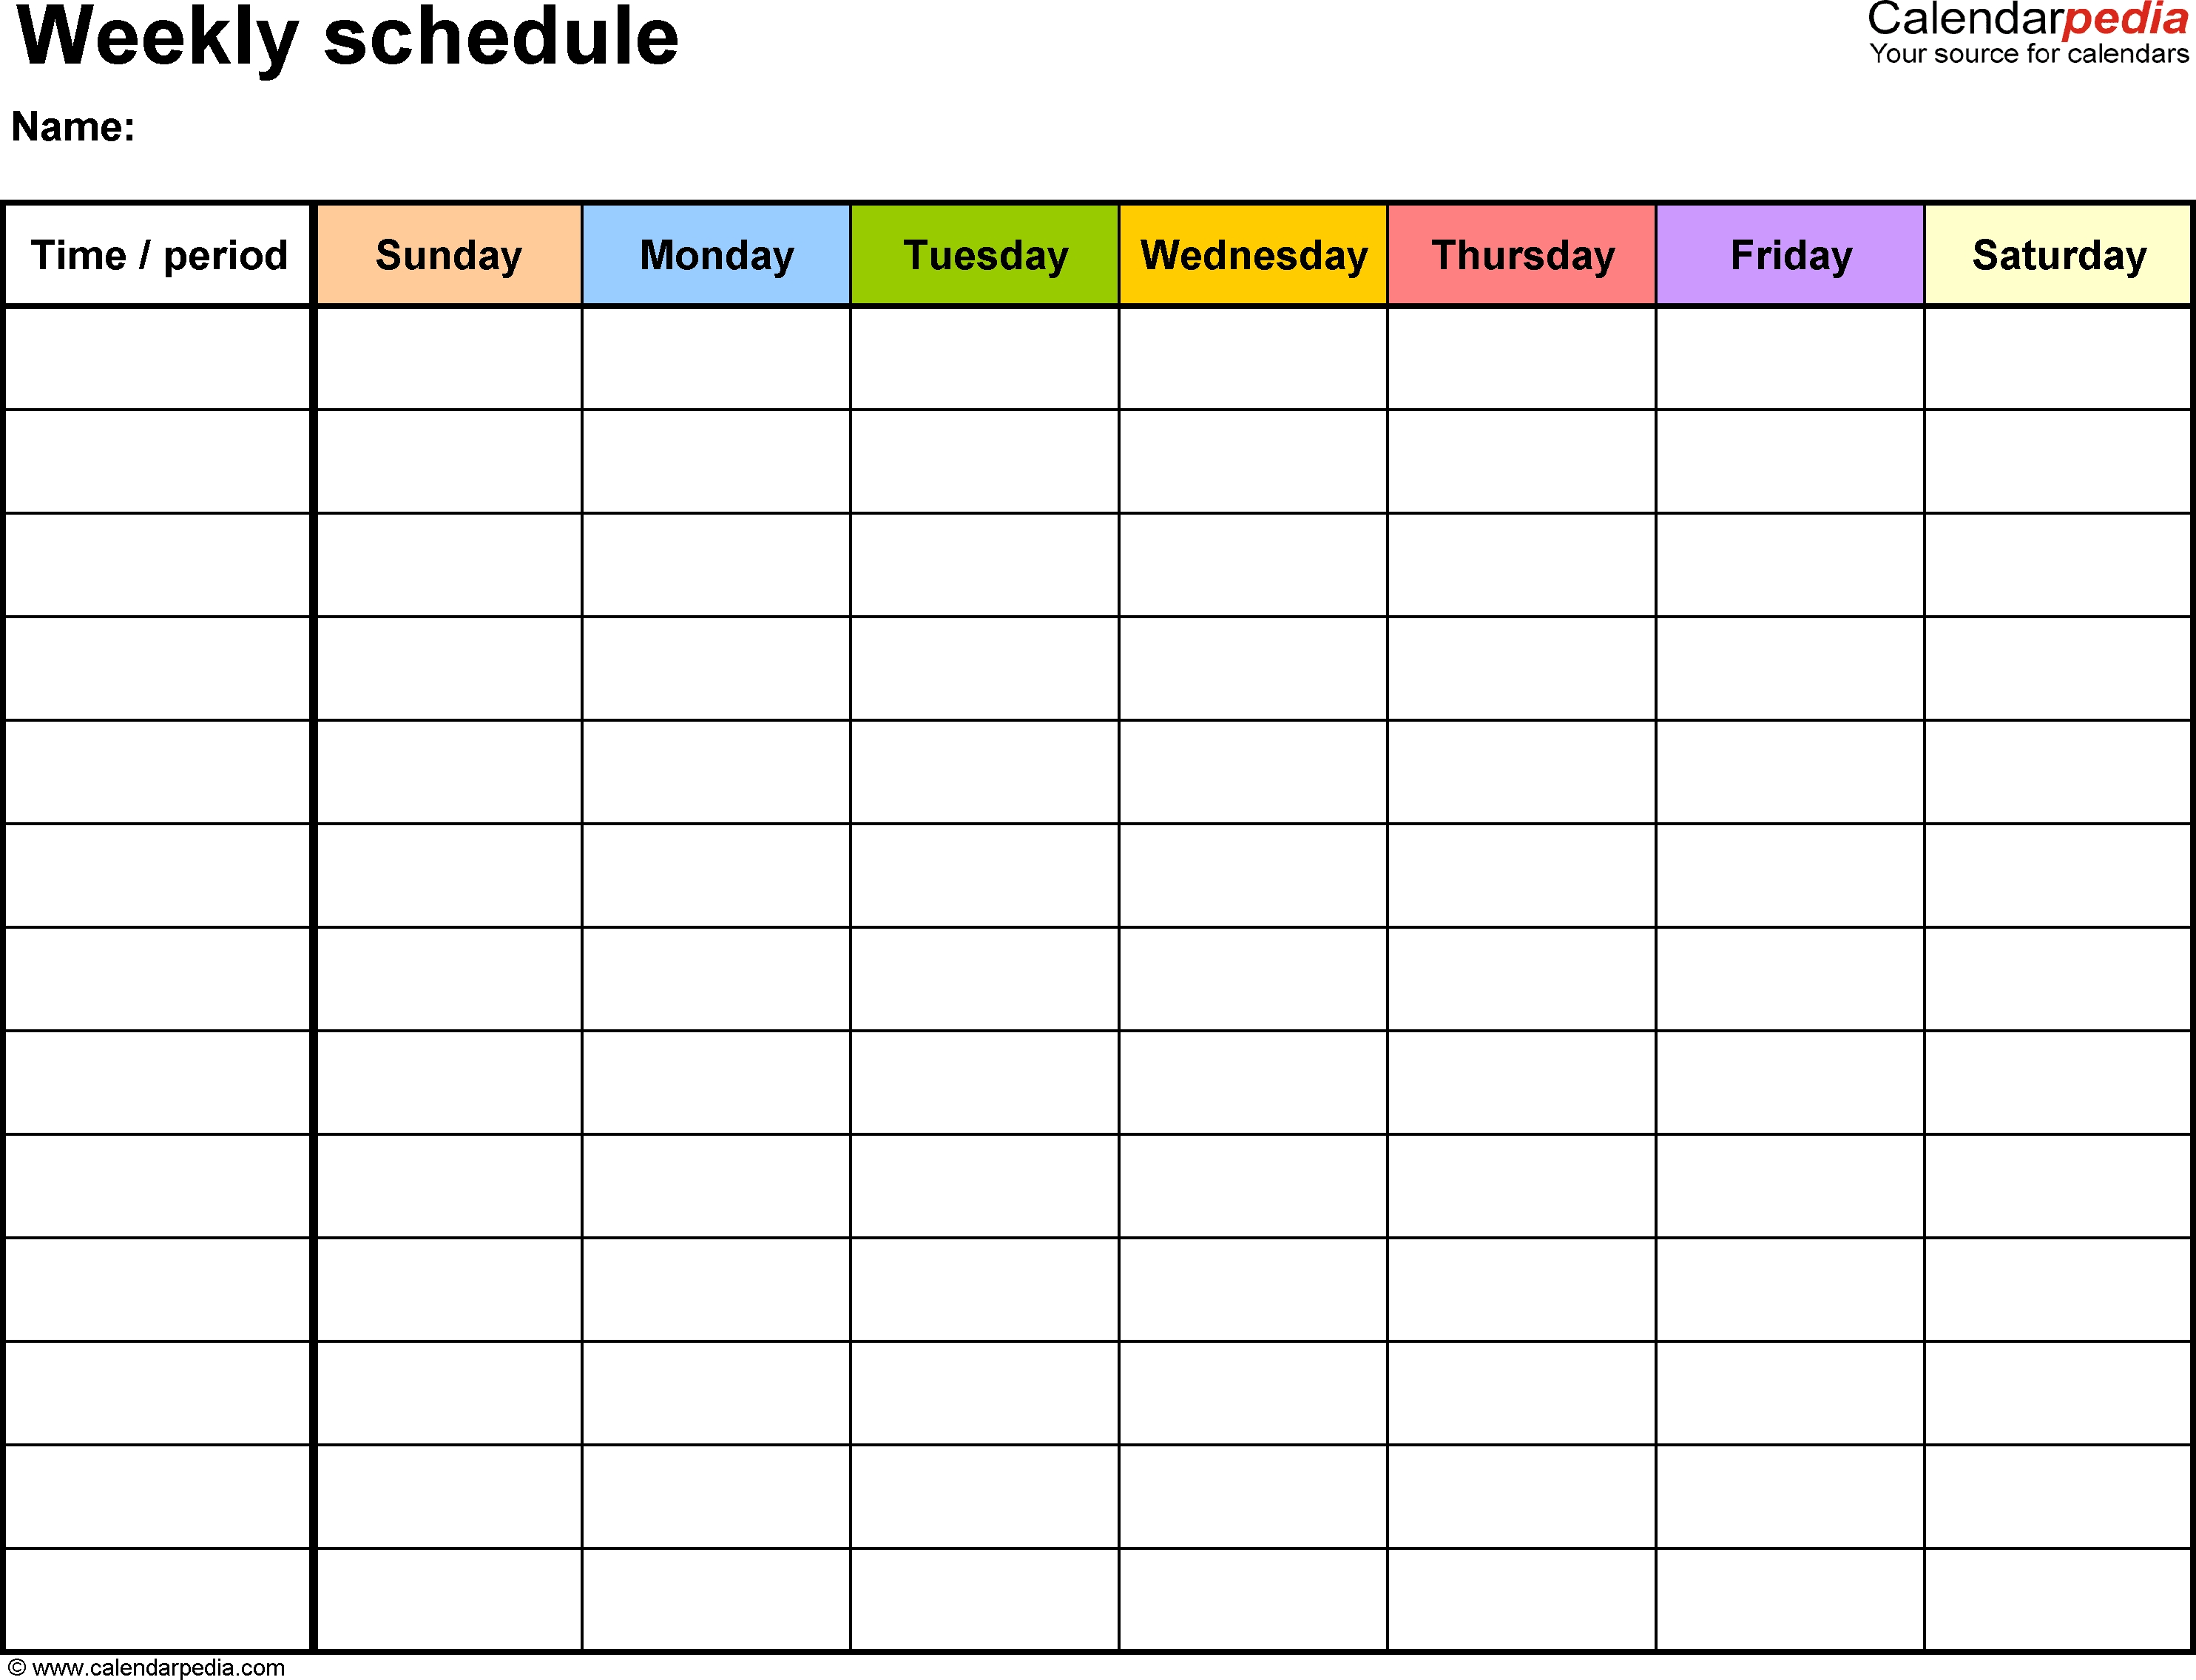 Free Weekly Schedule Templates For Excel - 18 Templates with Day By Day Schedule Template